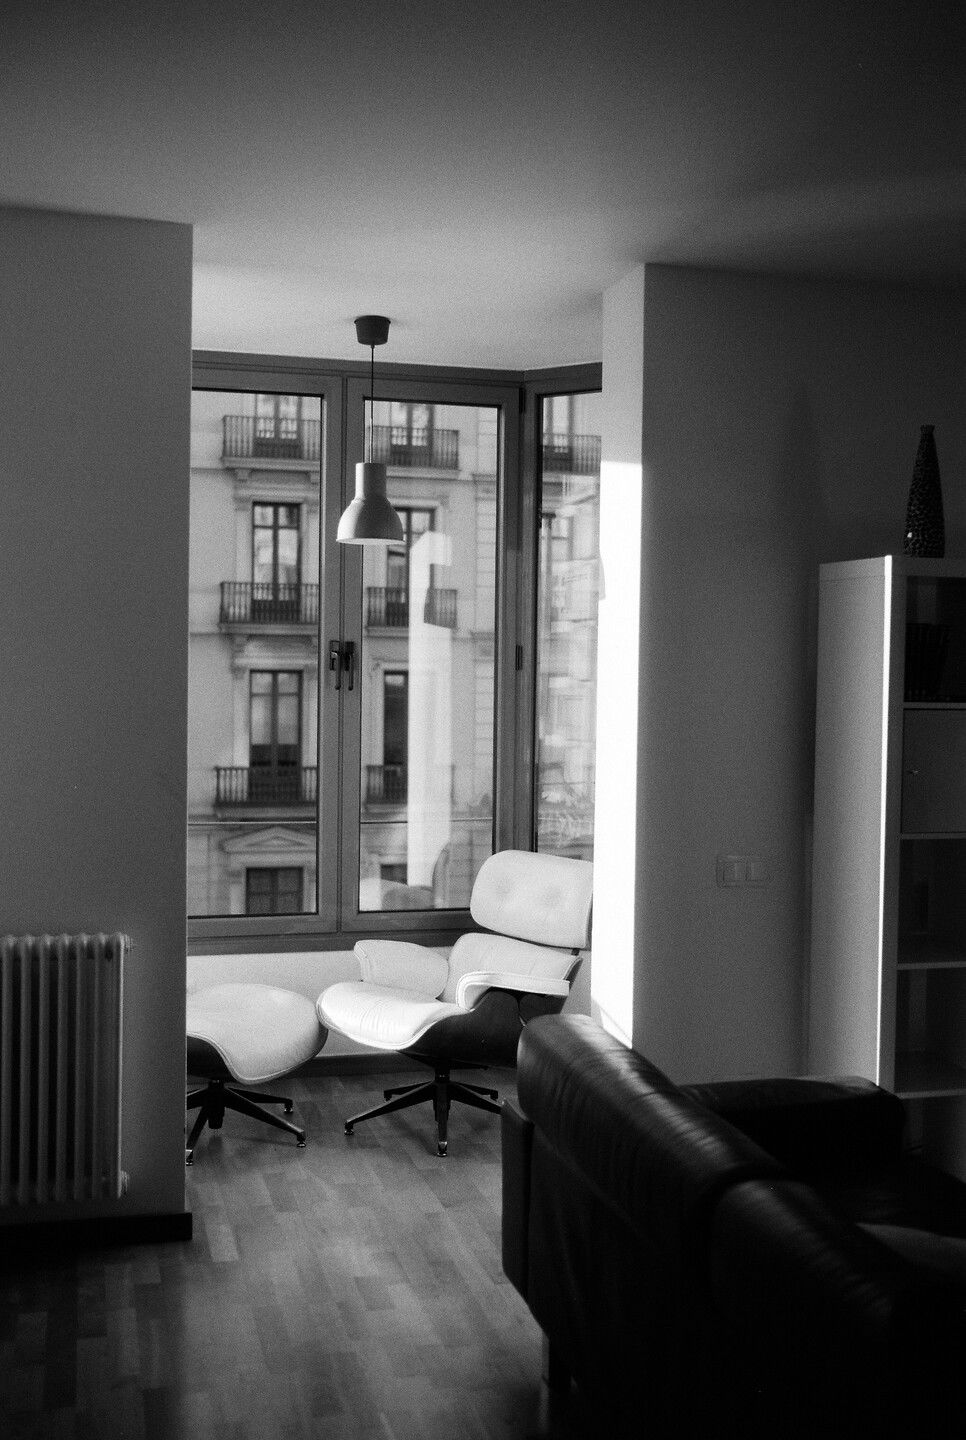 Sep 22, 2019 - Barcelona in Black and White: 0